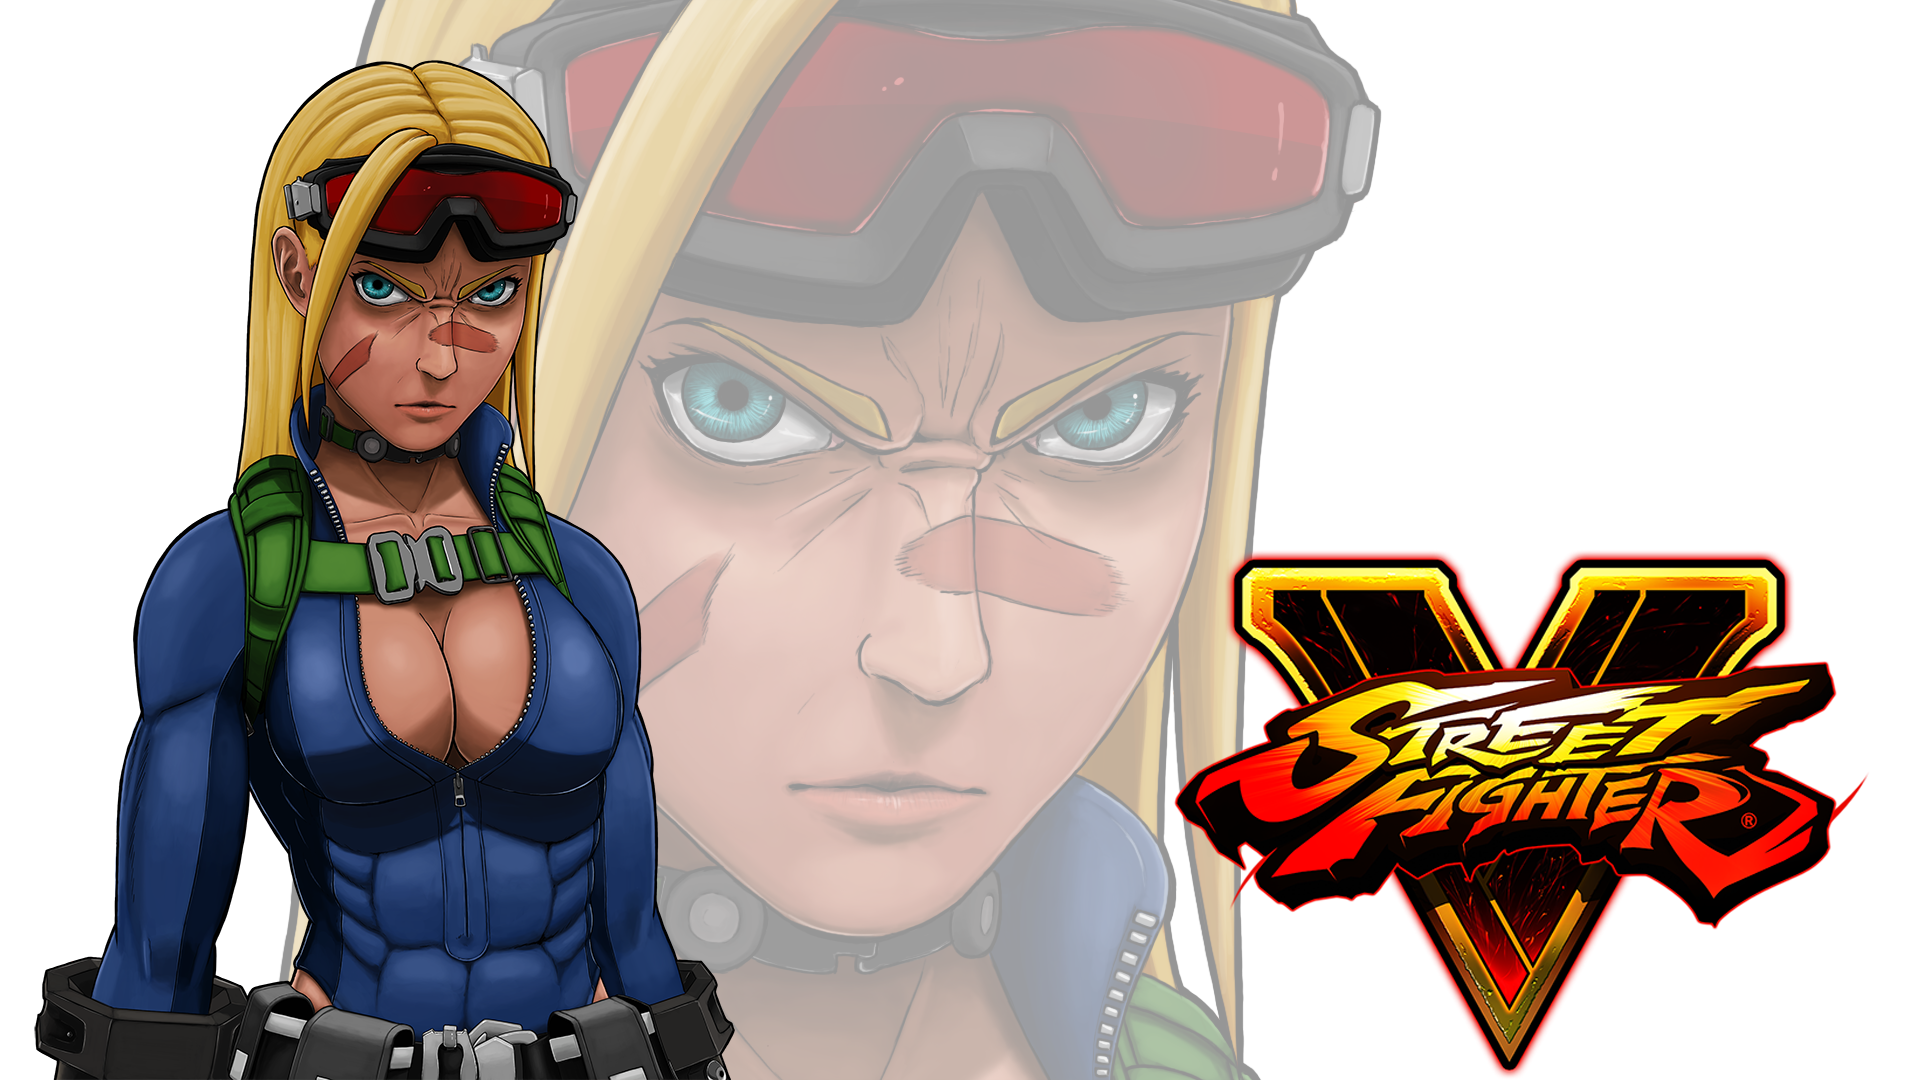 street_fighter_5_cammy_wallpaper_by_misucra-d9vdfvy.png